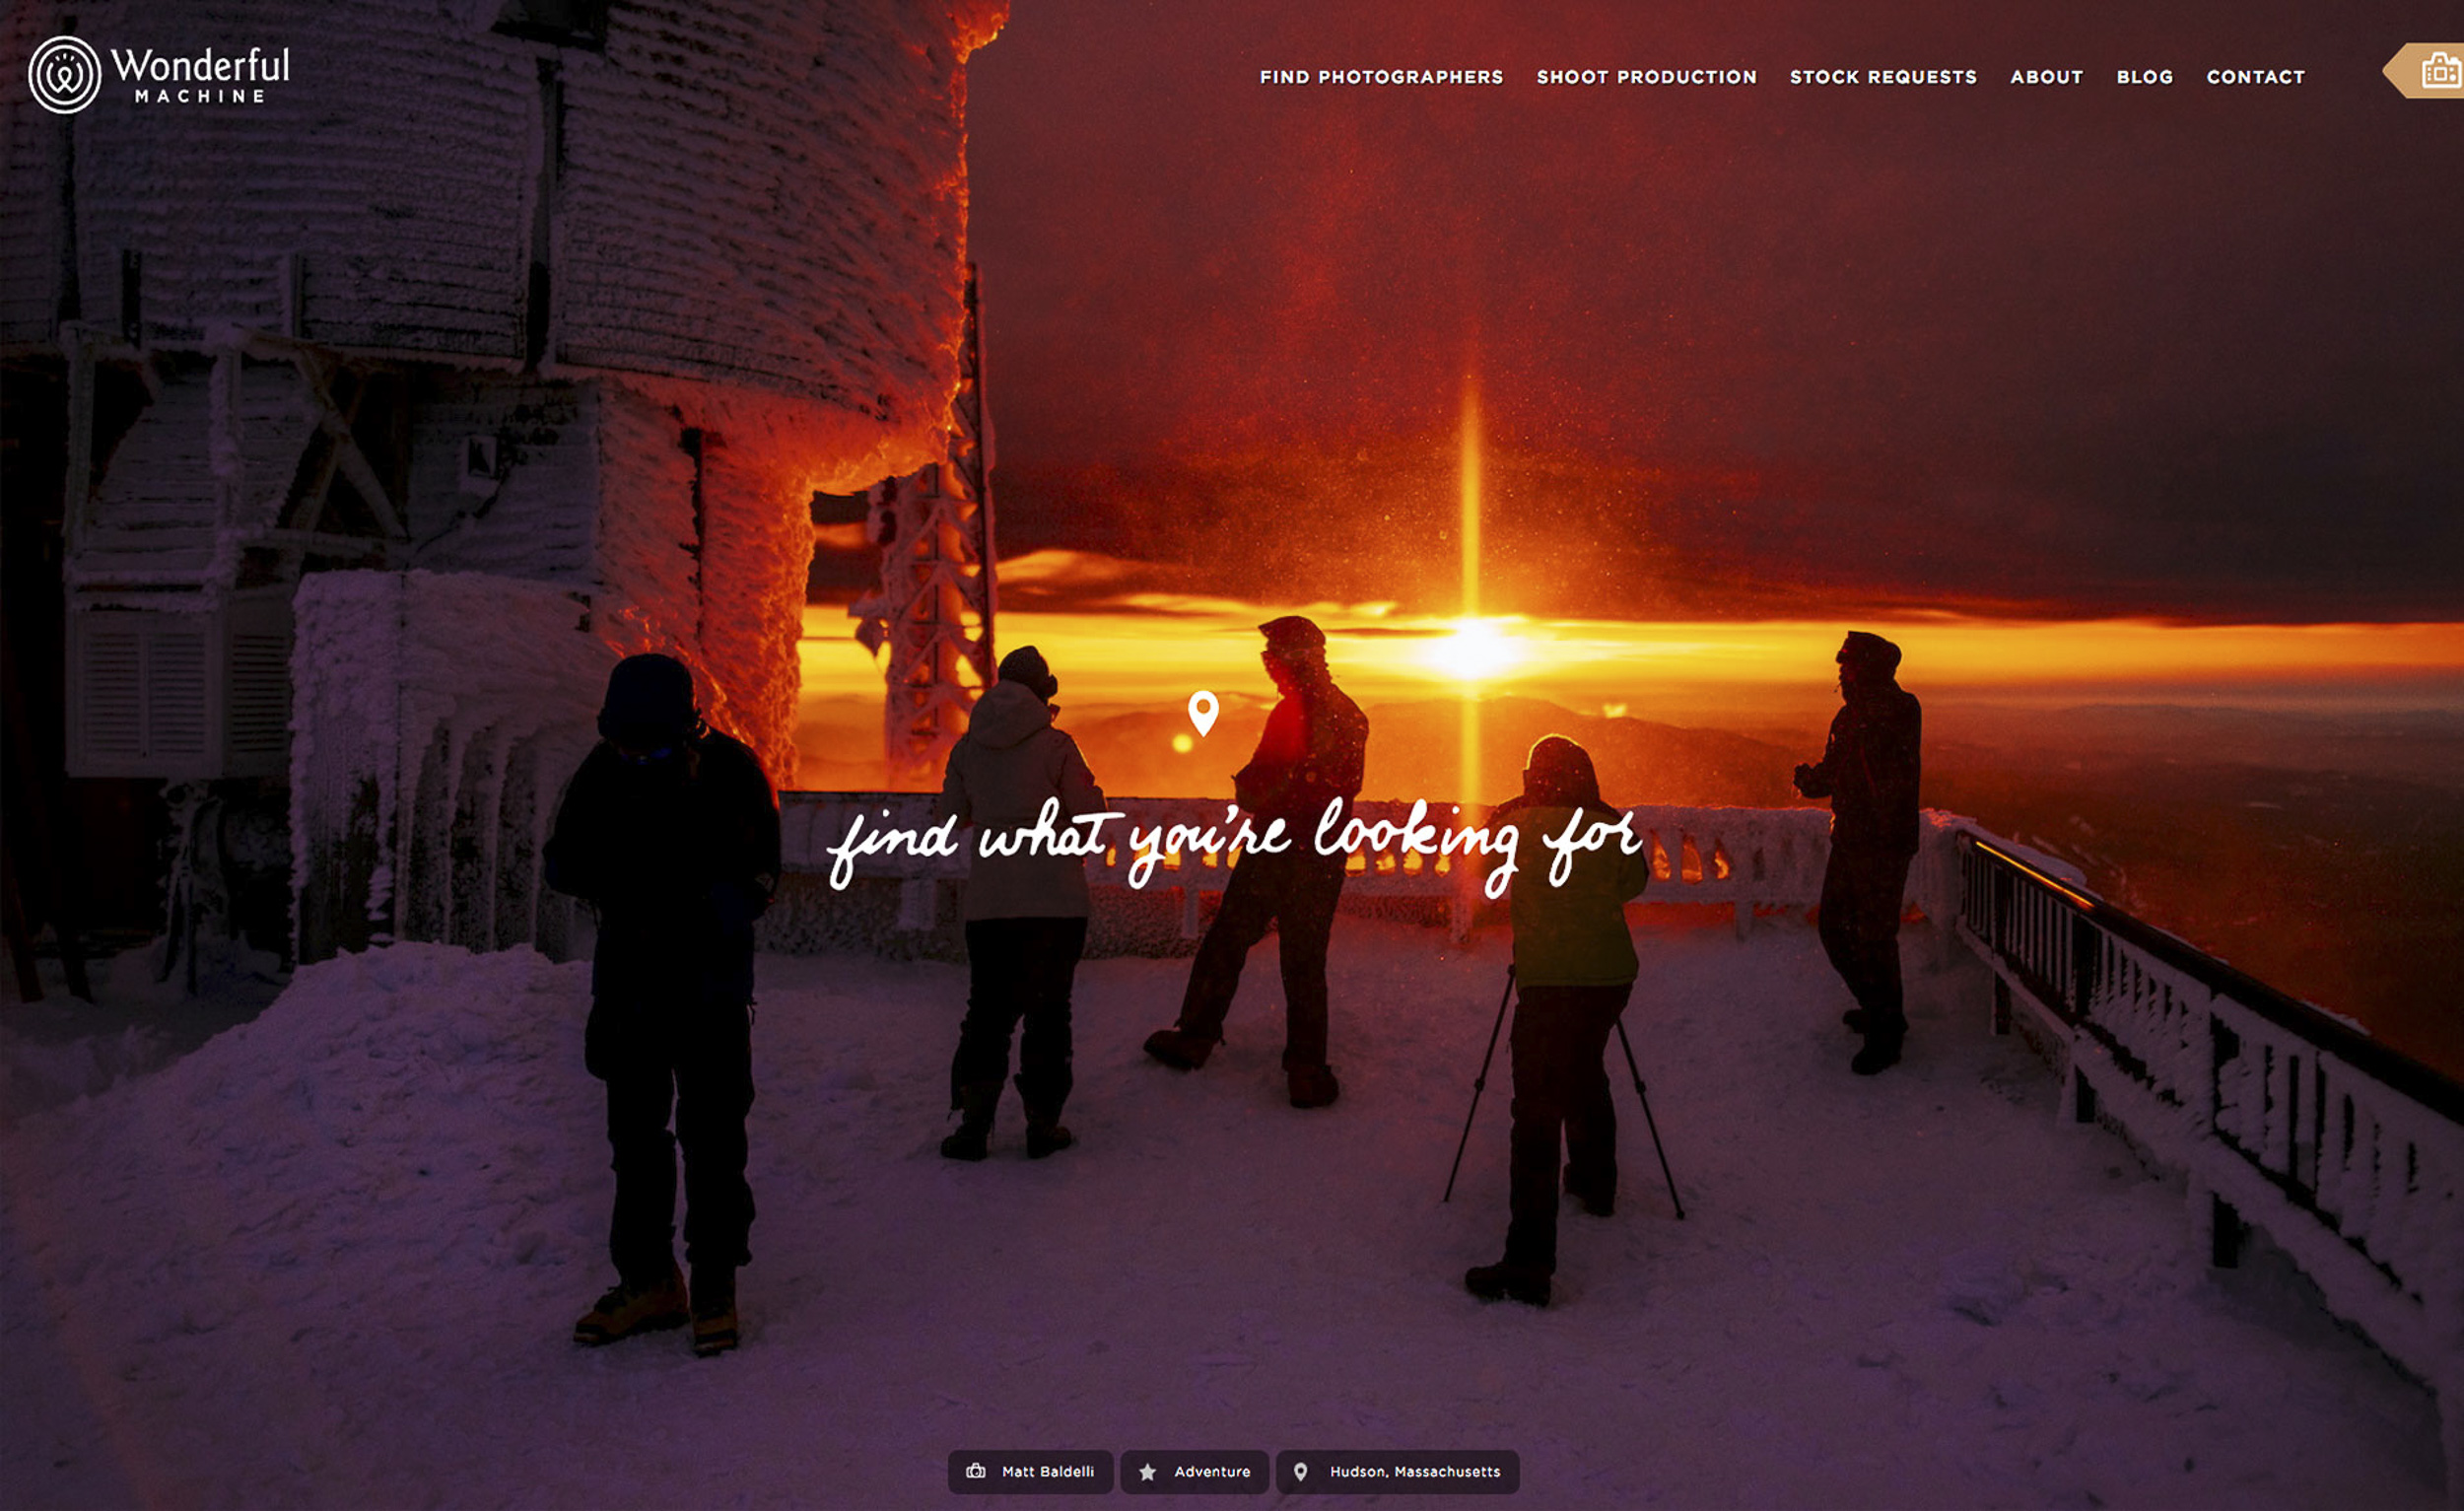 Wonderful-Machine-Homepage-Sunset